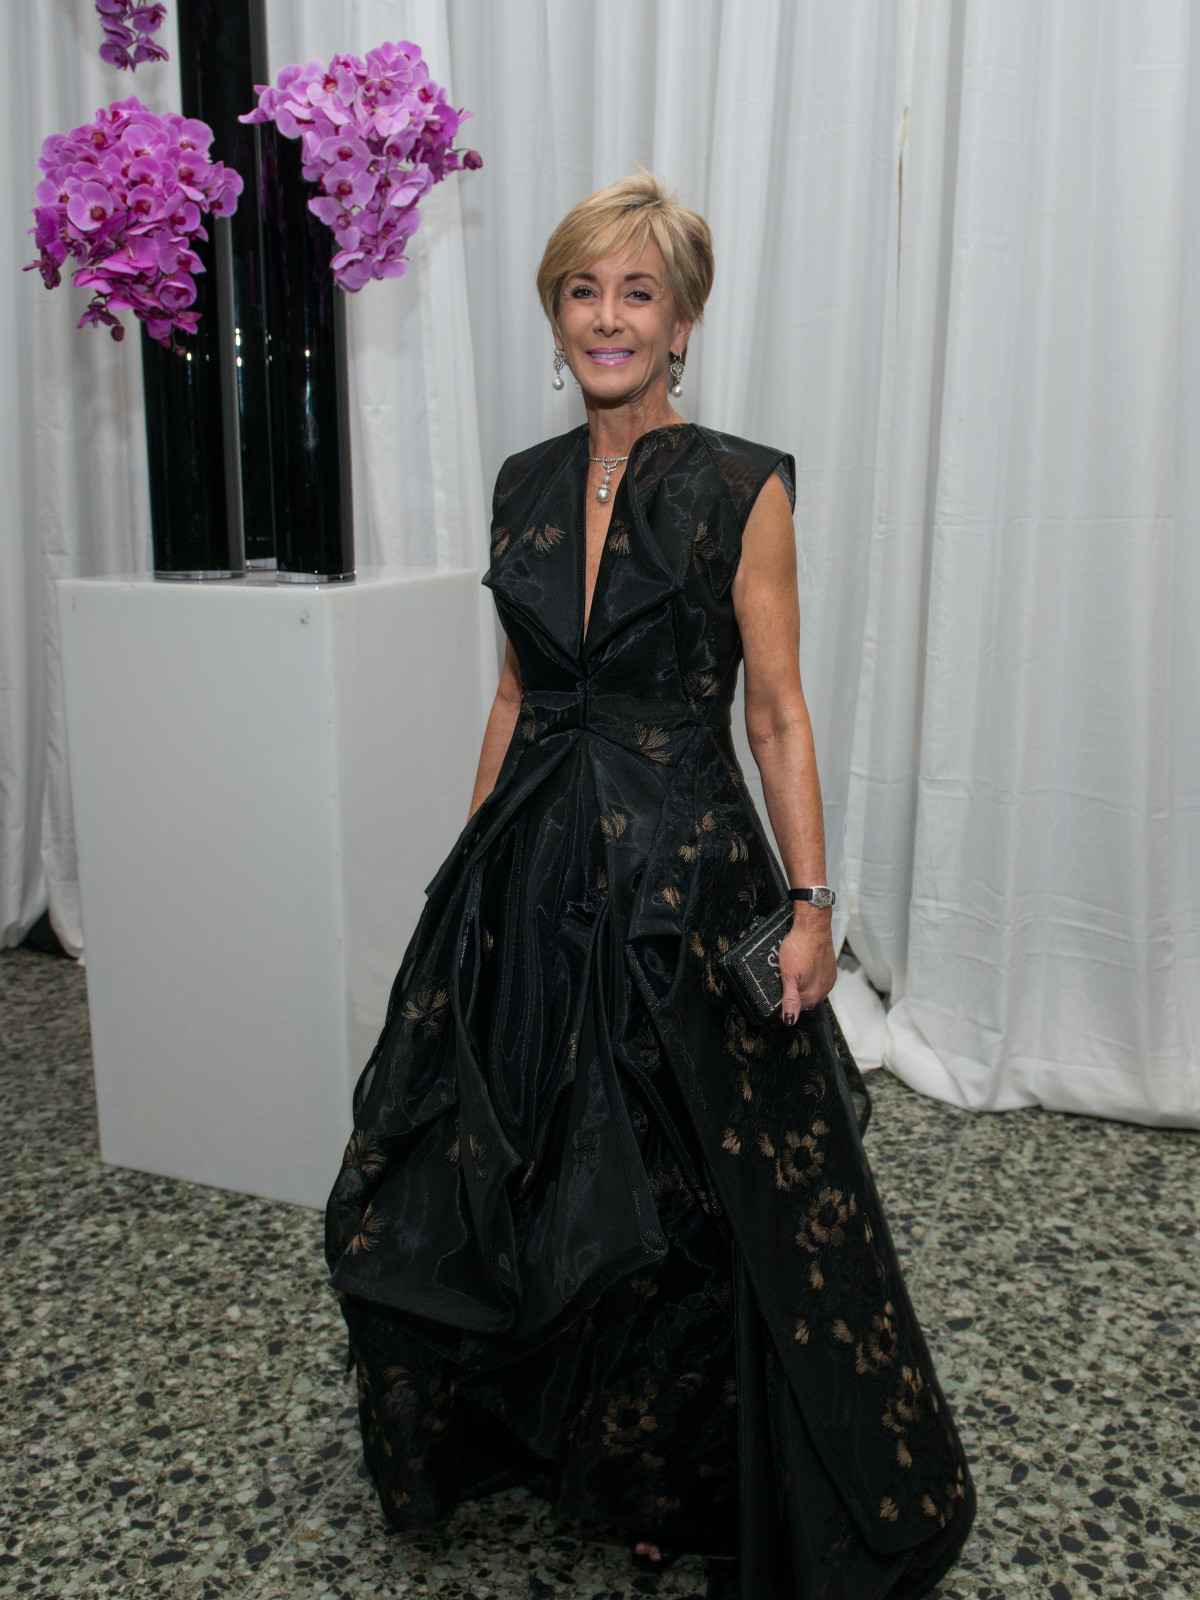 Houston, MFAH Oscar de la Renta Ball, Sheridan Williams